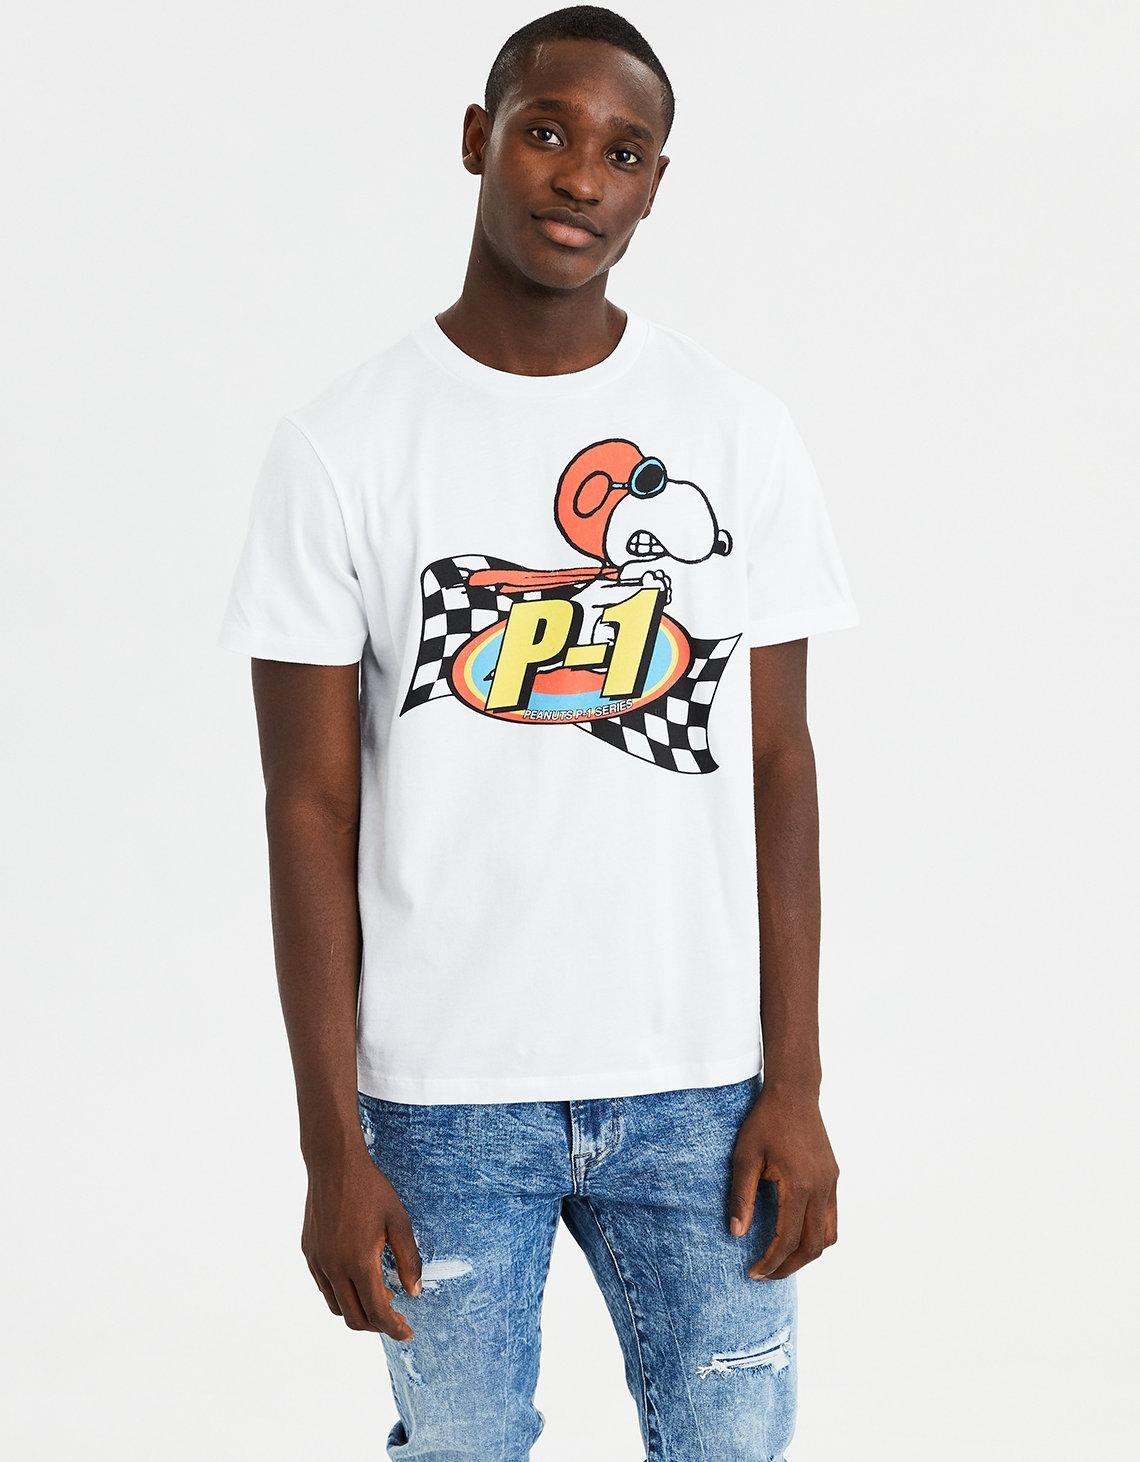 537dcca5 American Eagle Ae Snoopy Short Sleeve Graphic Tee in White for Men ...